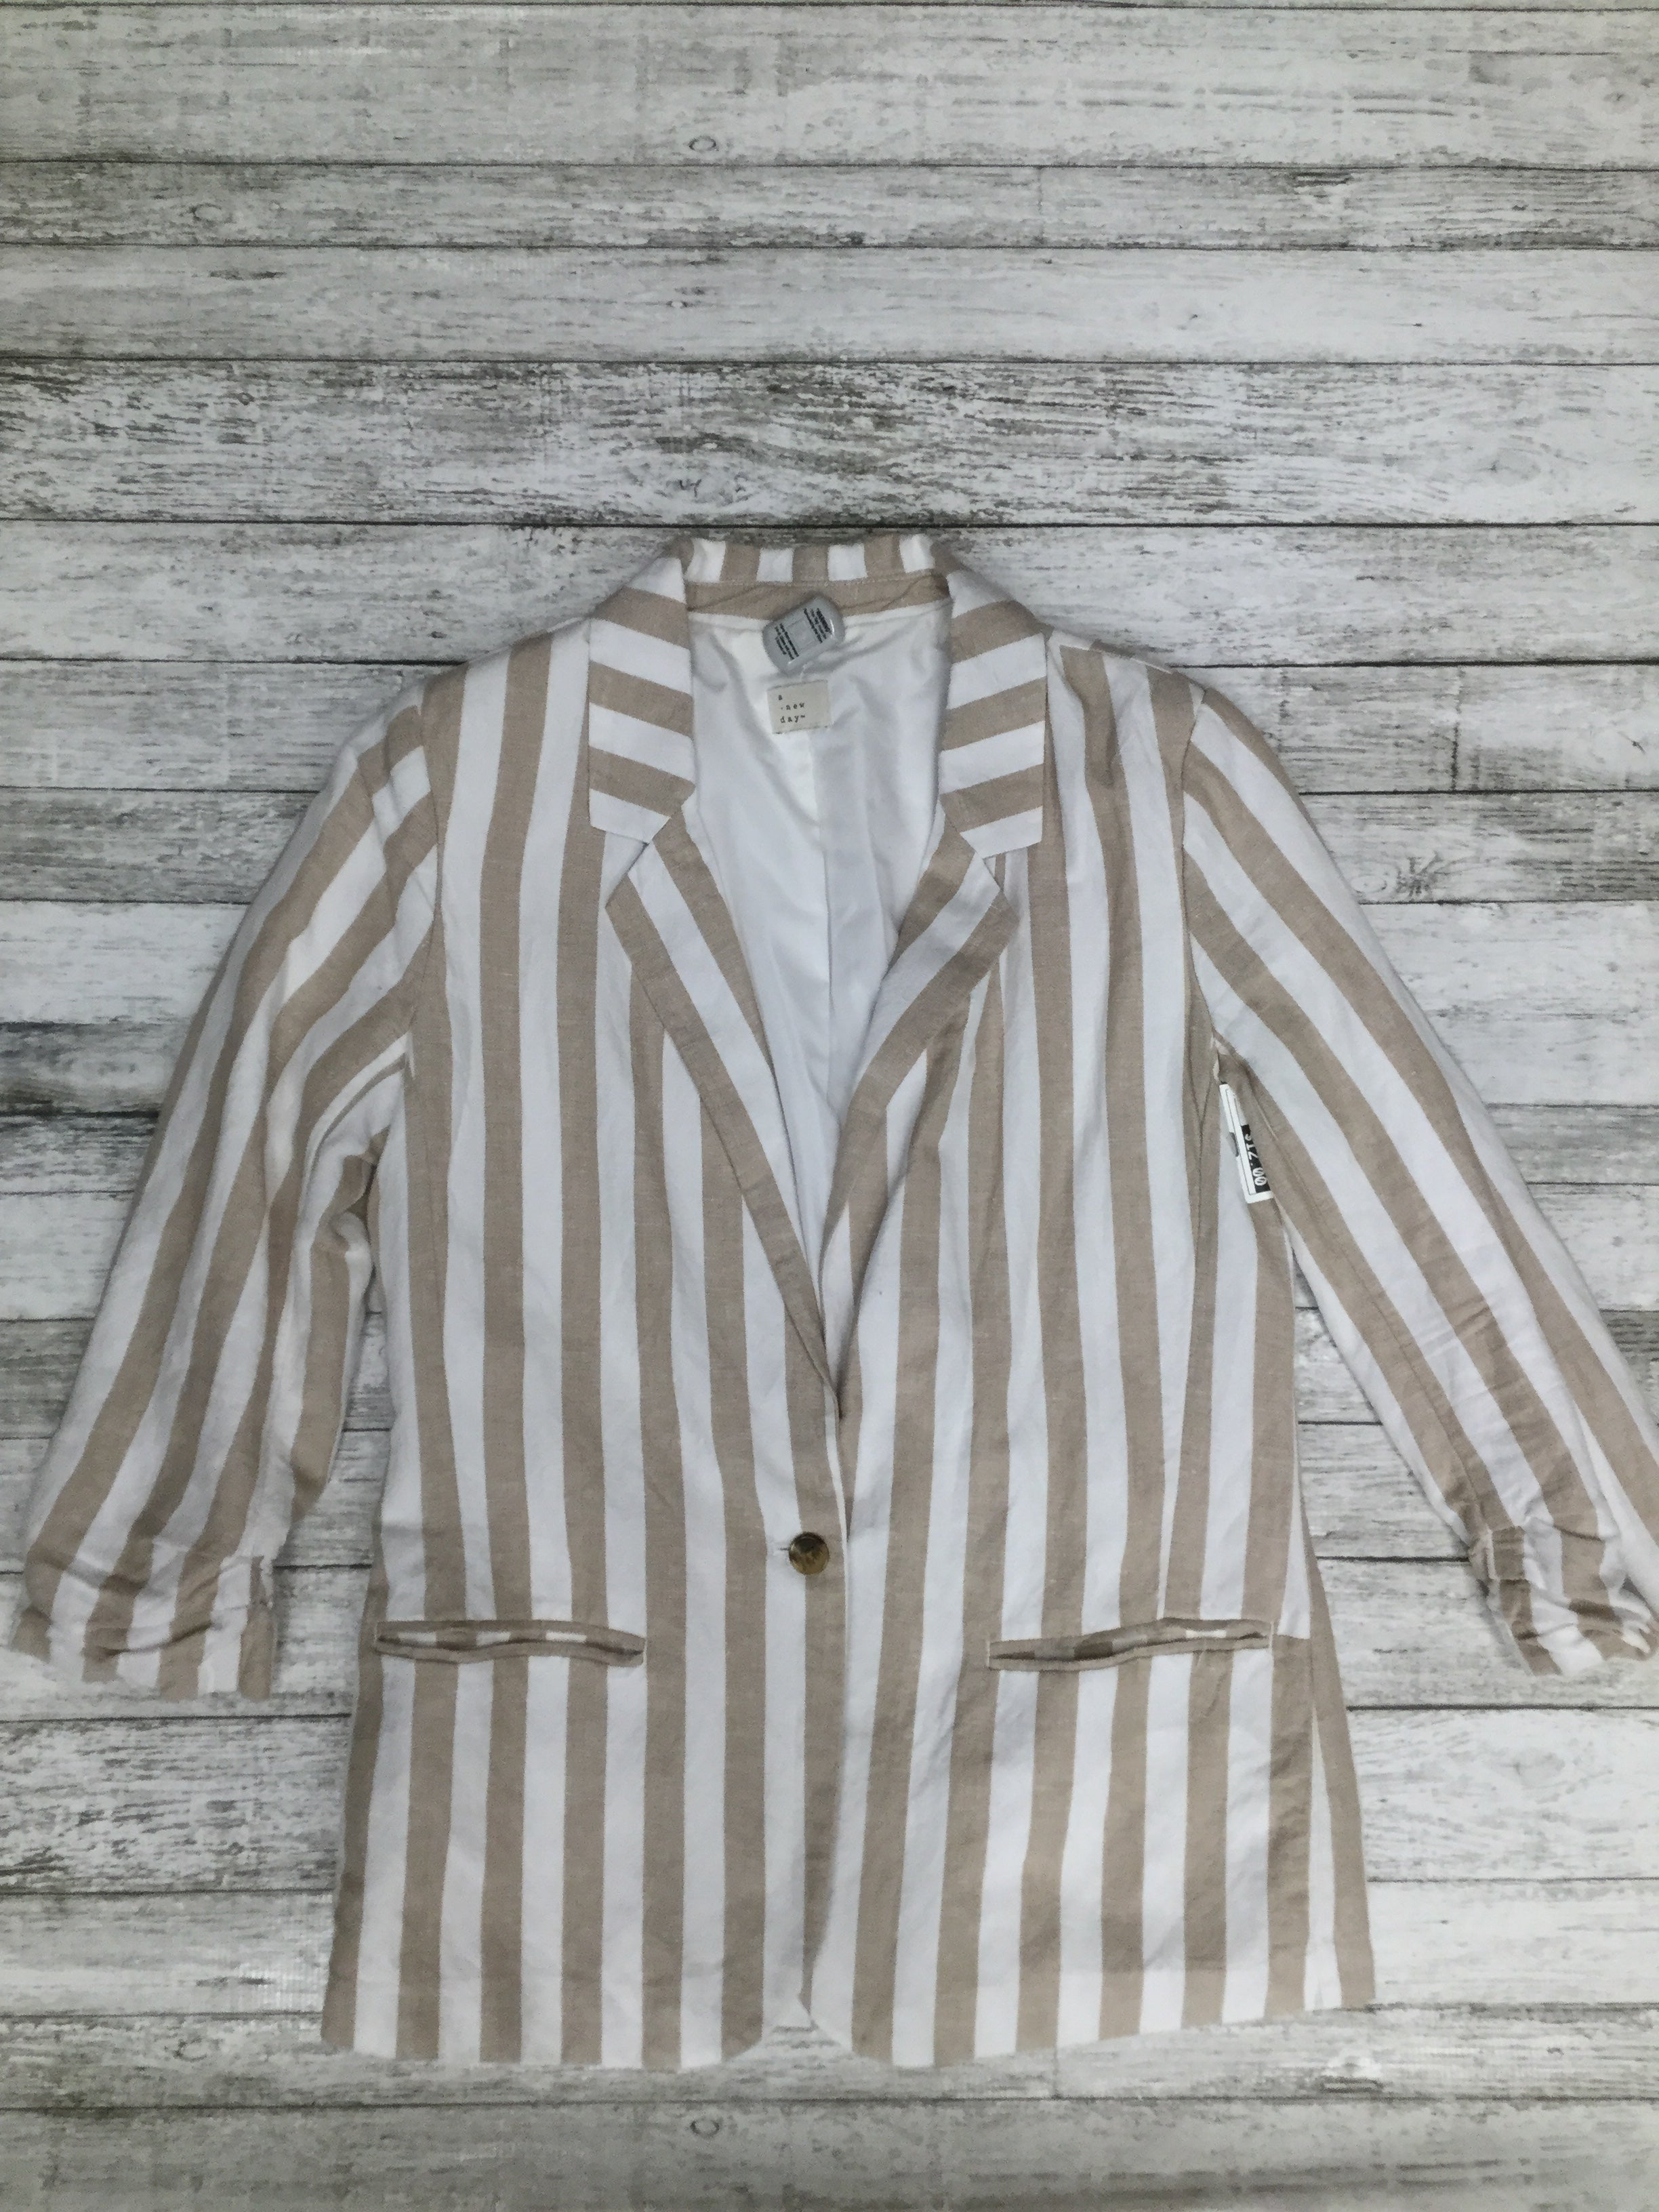 Primary Photo - BRAND: A NEW DAY , STYLE: BLAZER JACKET , COLOR: STRIPED , SIZE: M , SKU: 105-3221-7319